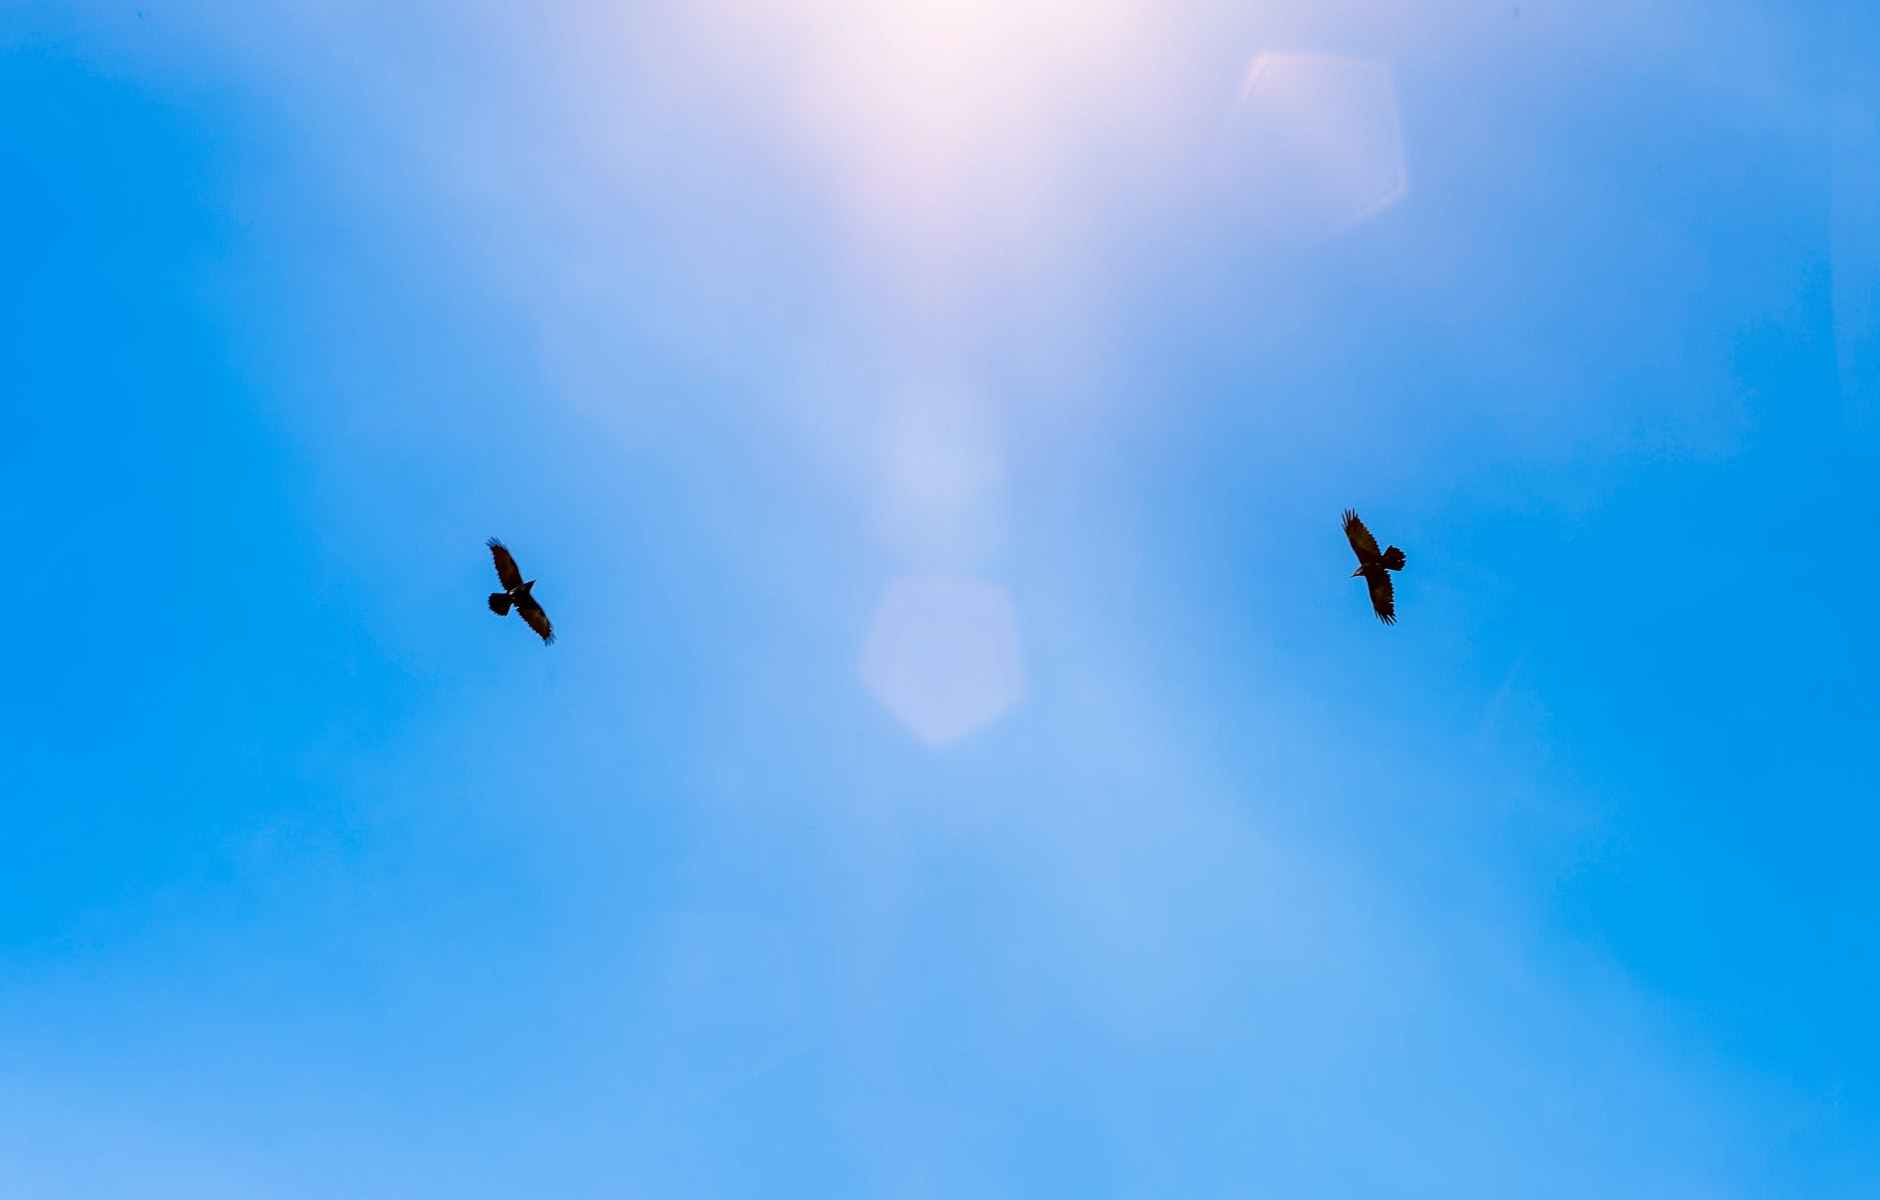 two birds soaring in clear blue skies